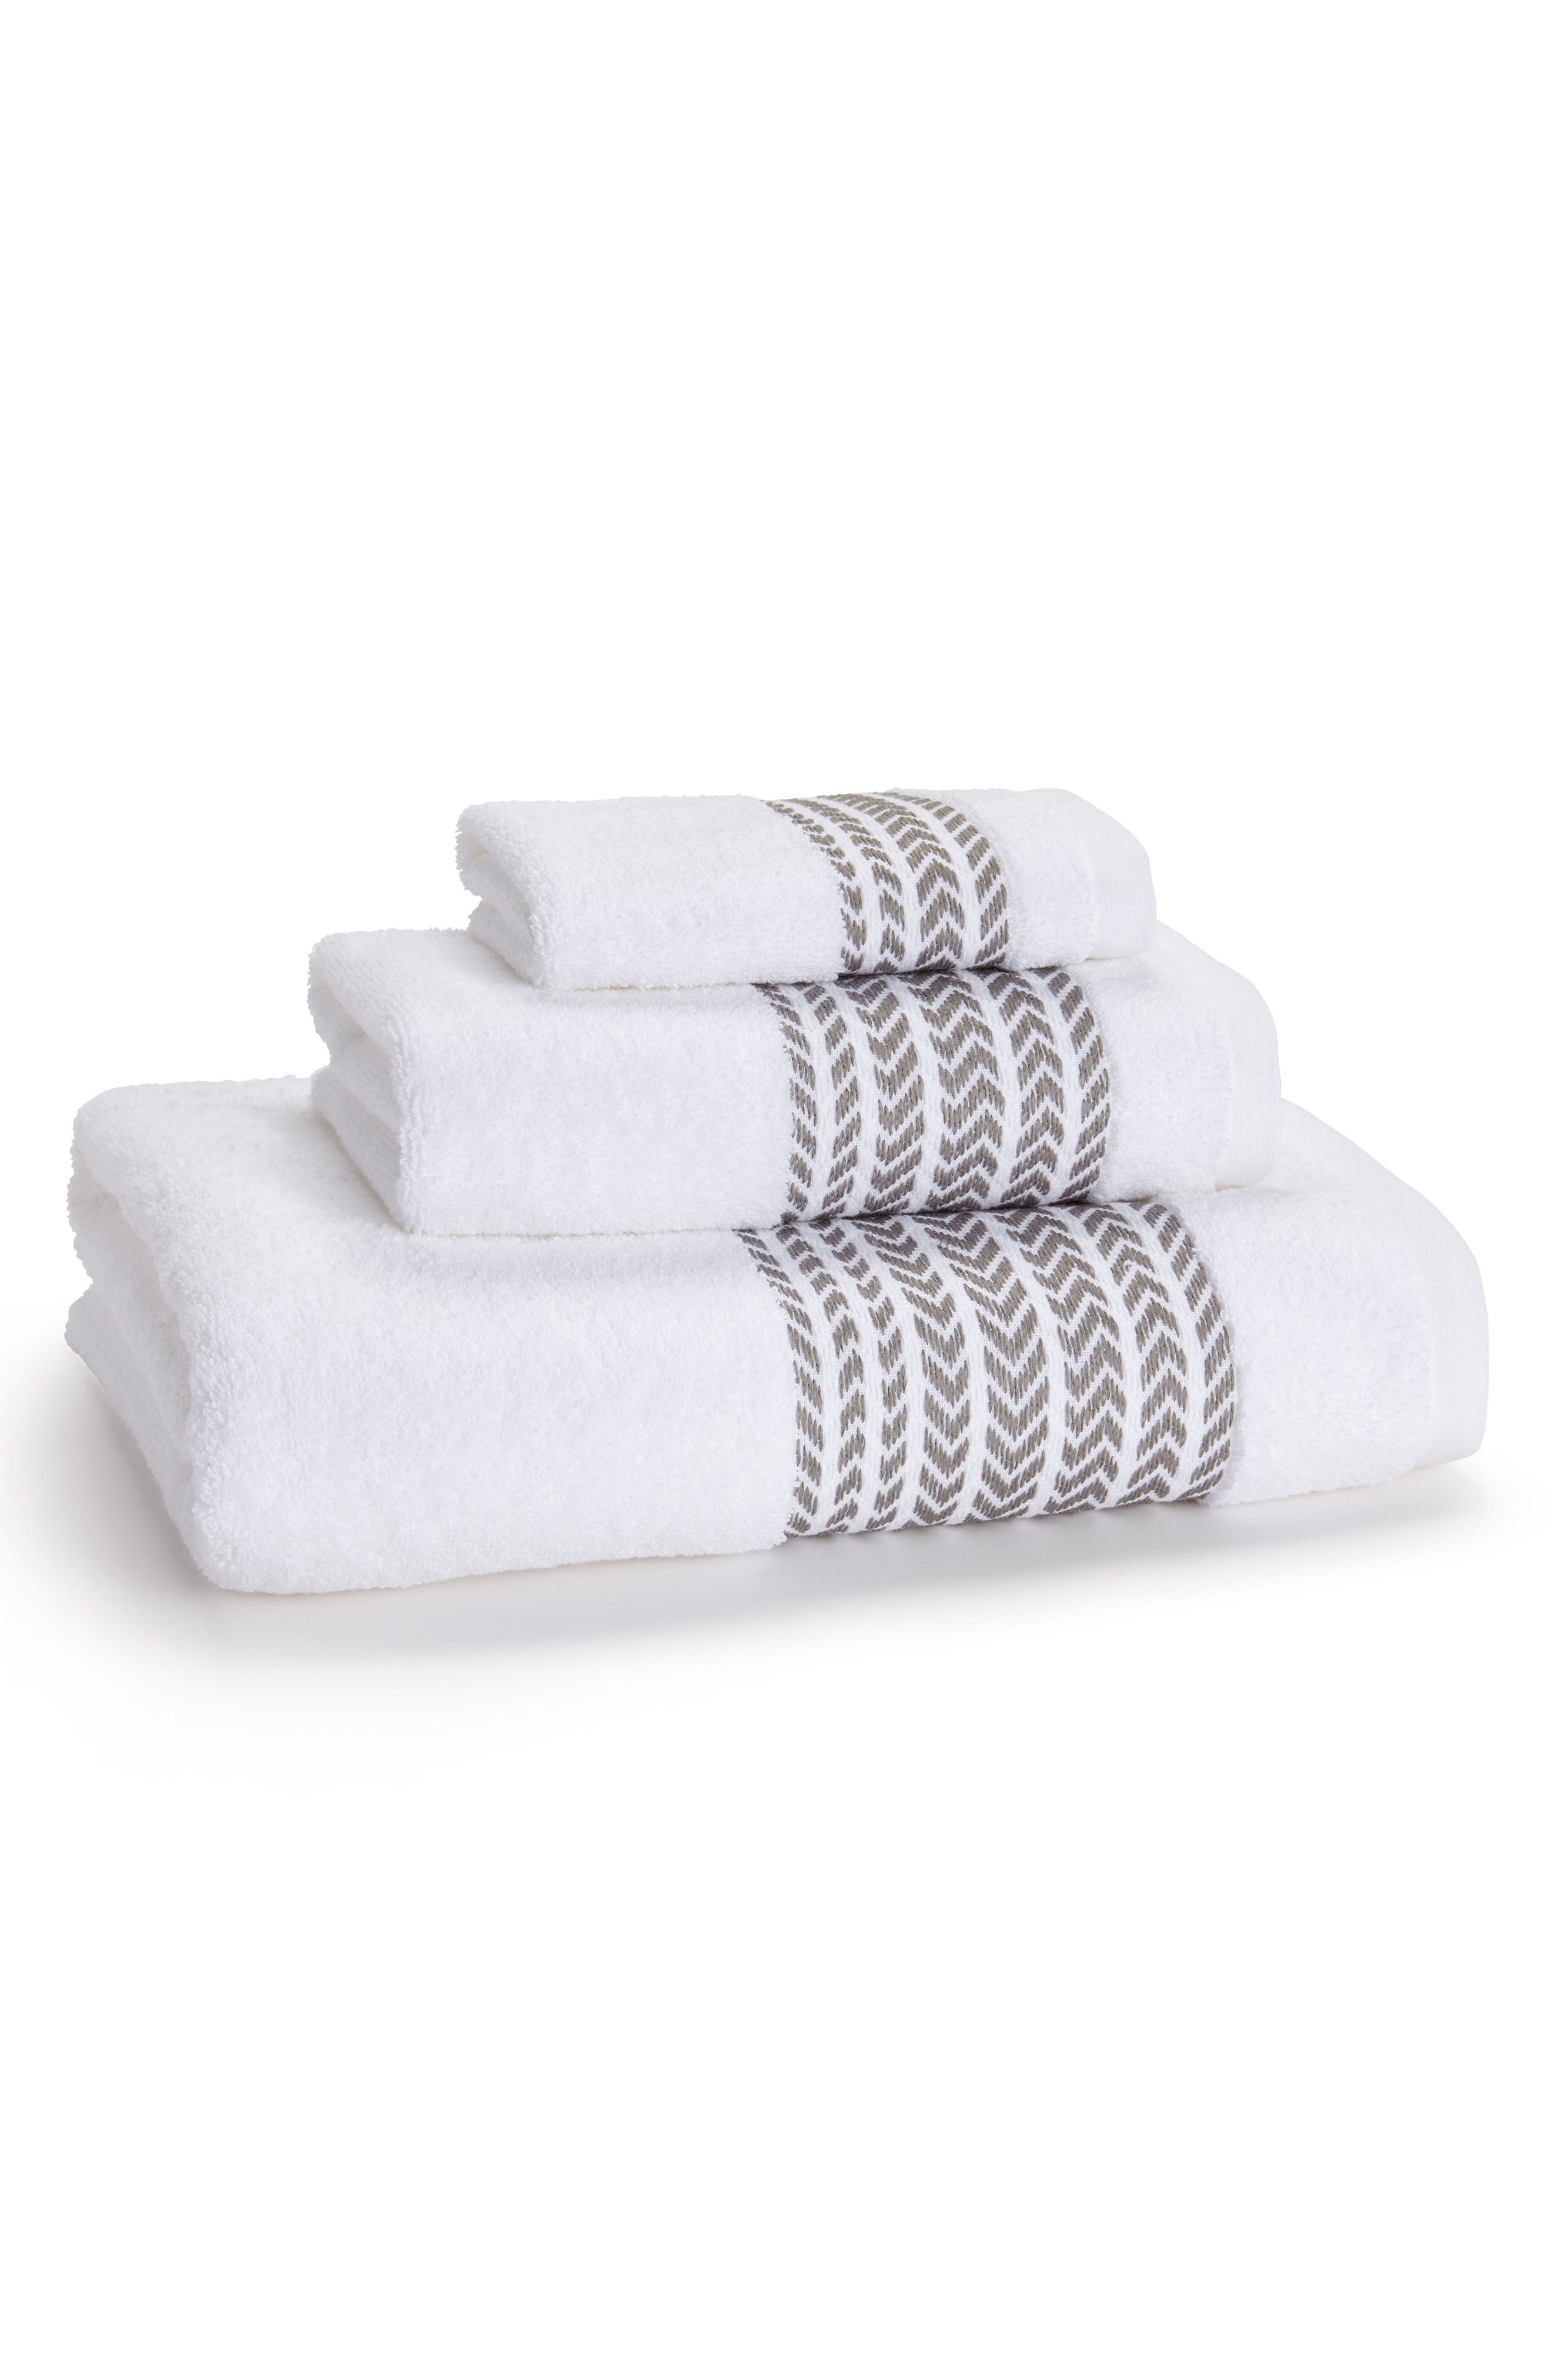 Baja Hand Towel,                         Main,                         color, 020